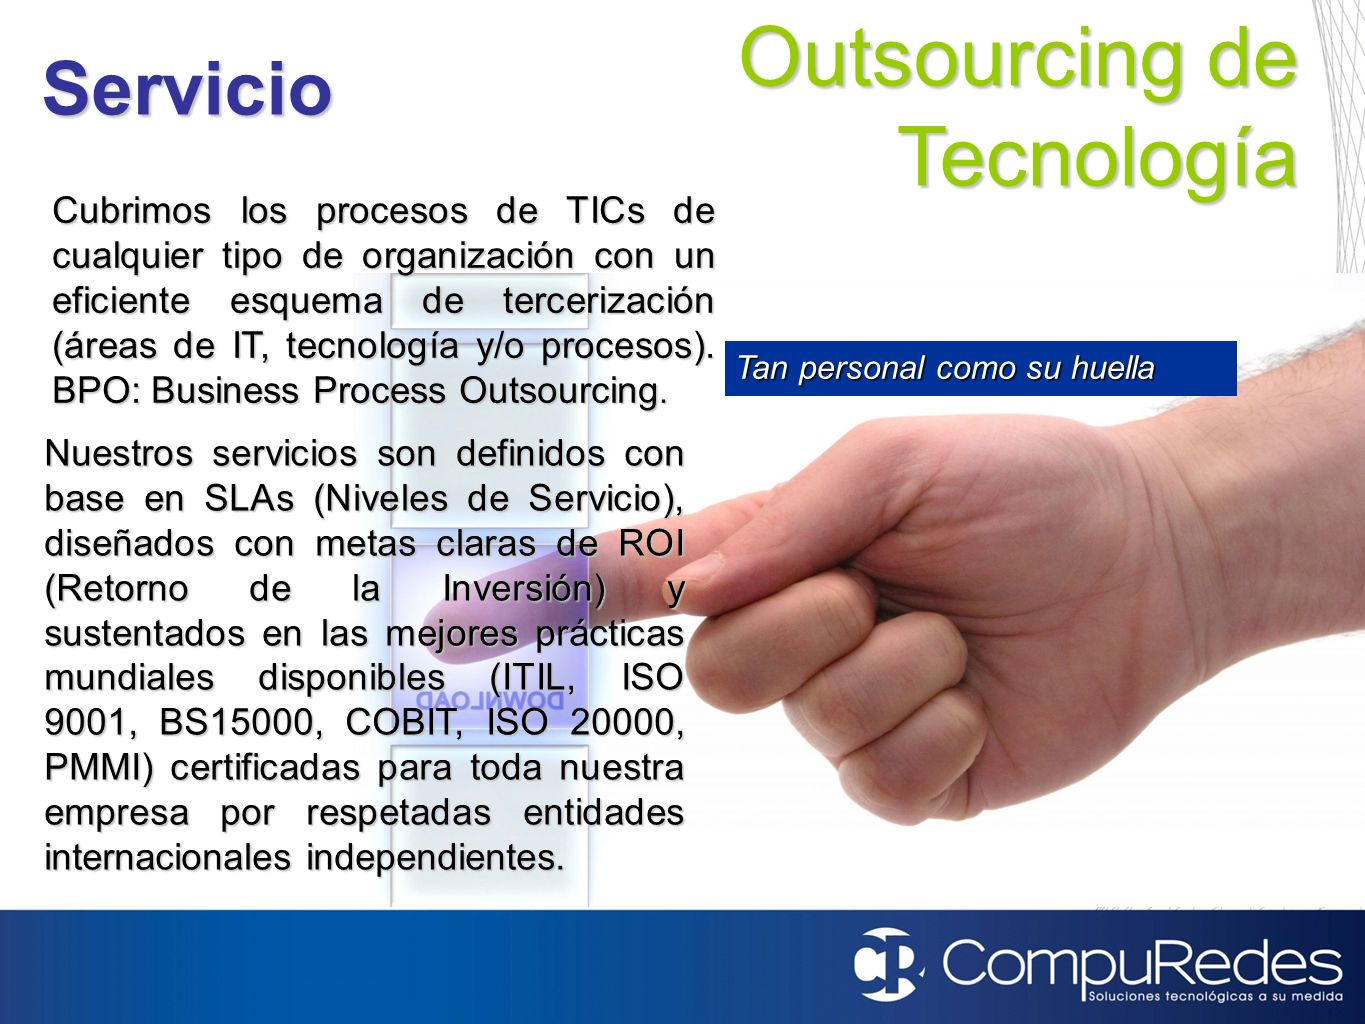 Outsourcing de Tecnología